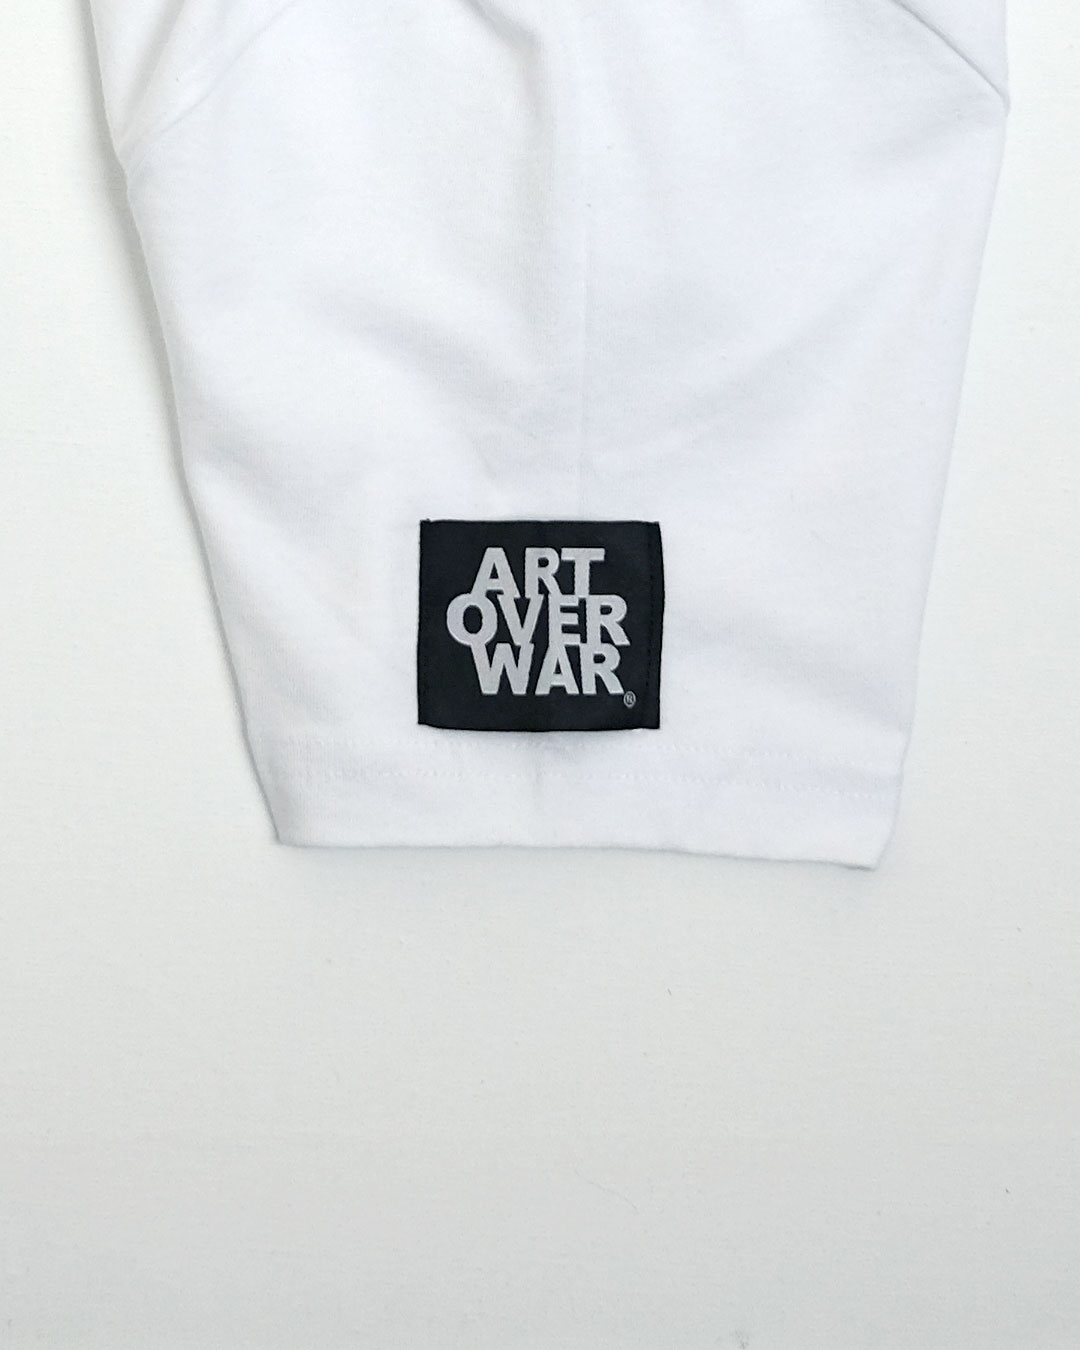 WHITE-L-SLEEVE-URBANE-MUSE-CHRIS-SMITH-ART-OVER-WAR-T-Shirts